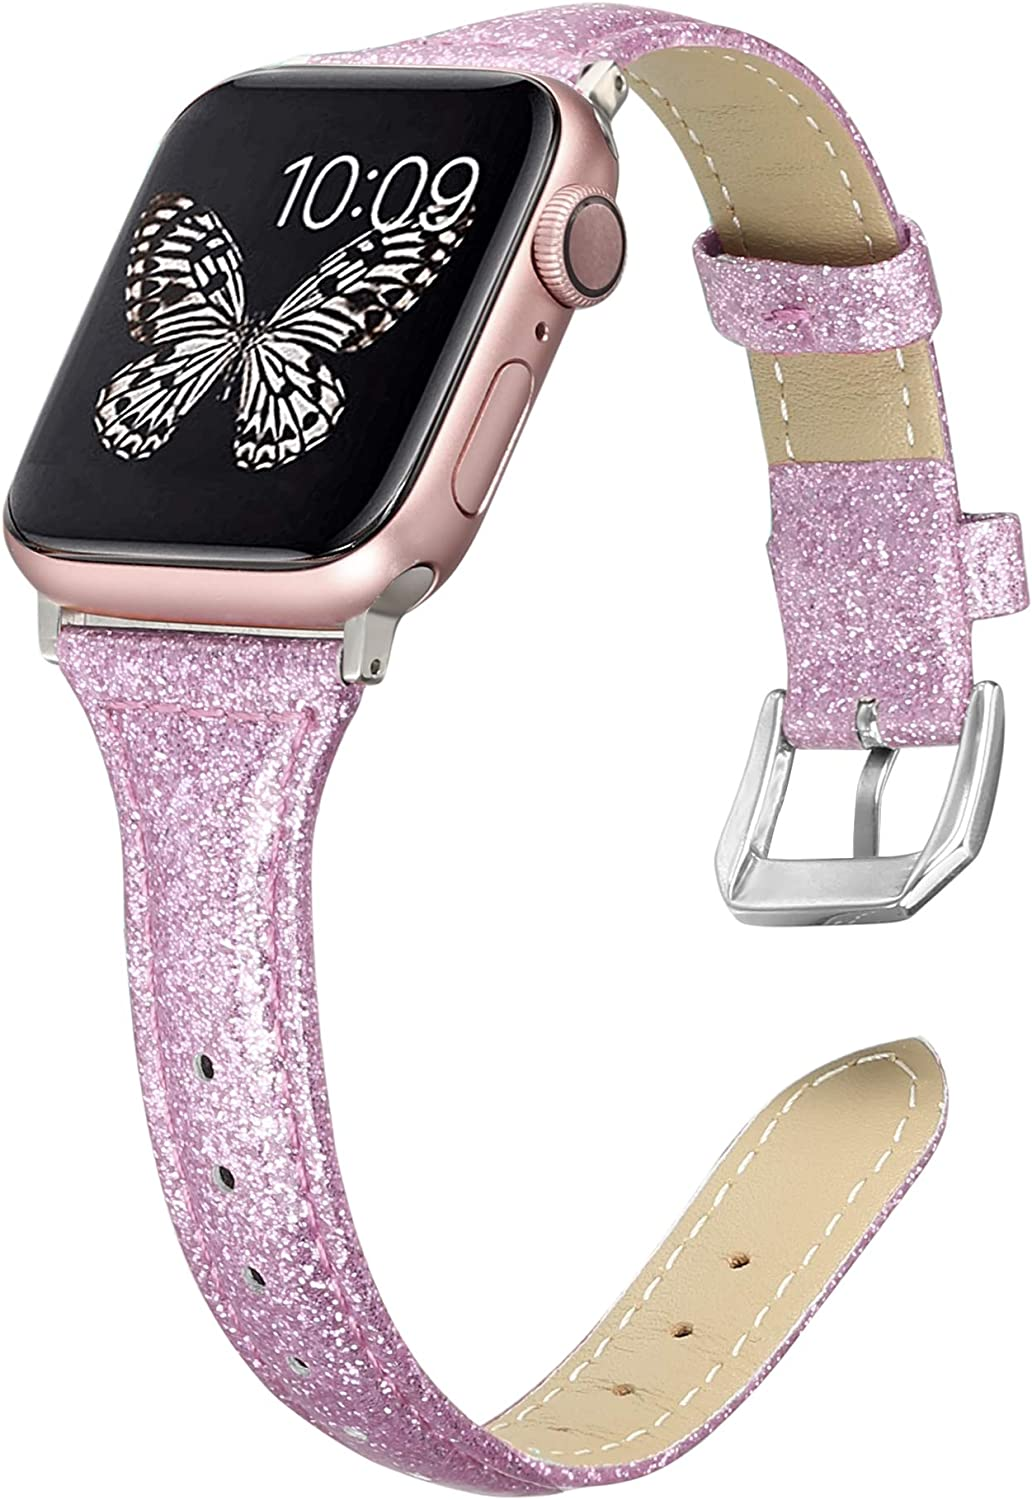 Secbolt Leather Bands Compatible with Apple Watch Band 38mm 40mm iWatch Series 6/5/4/3/2/1 SE, Soft Genuine Leather Wristband Strap Accessories Women, Glitter Lavender